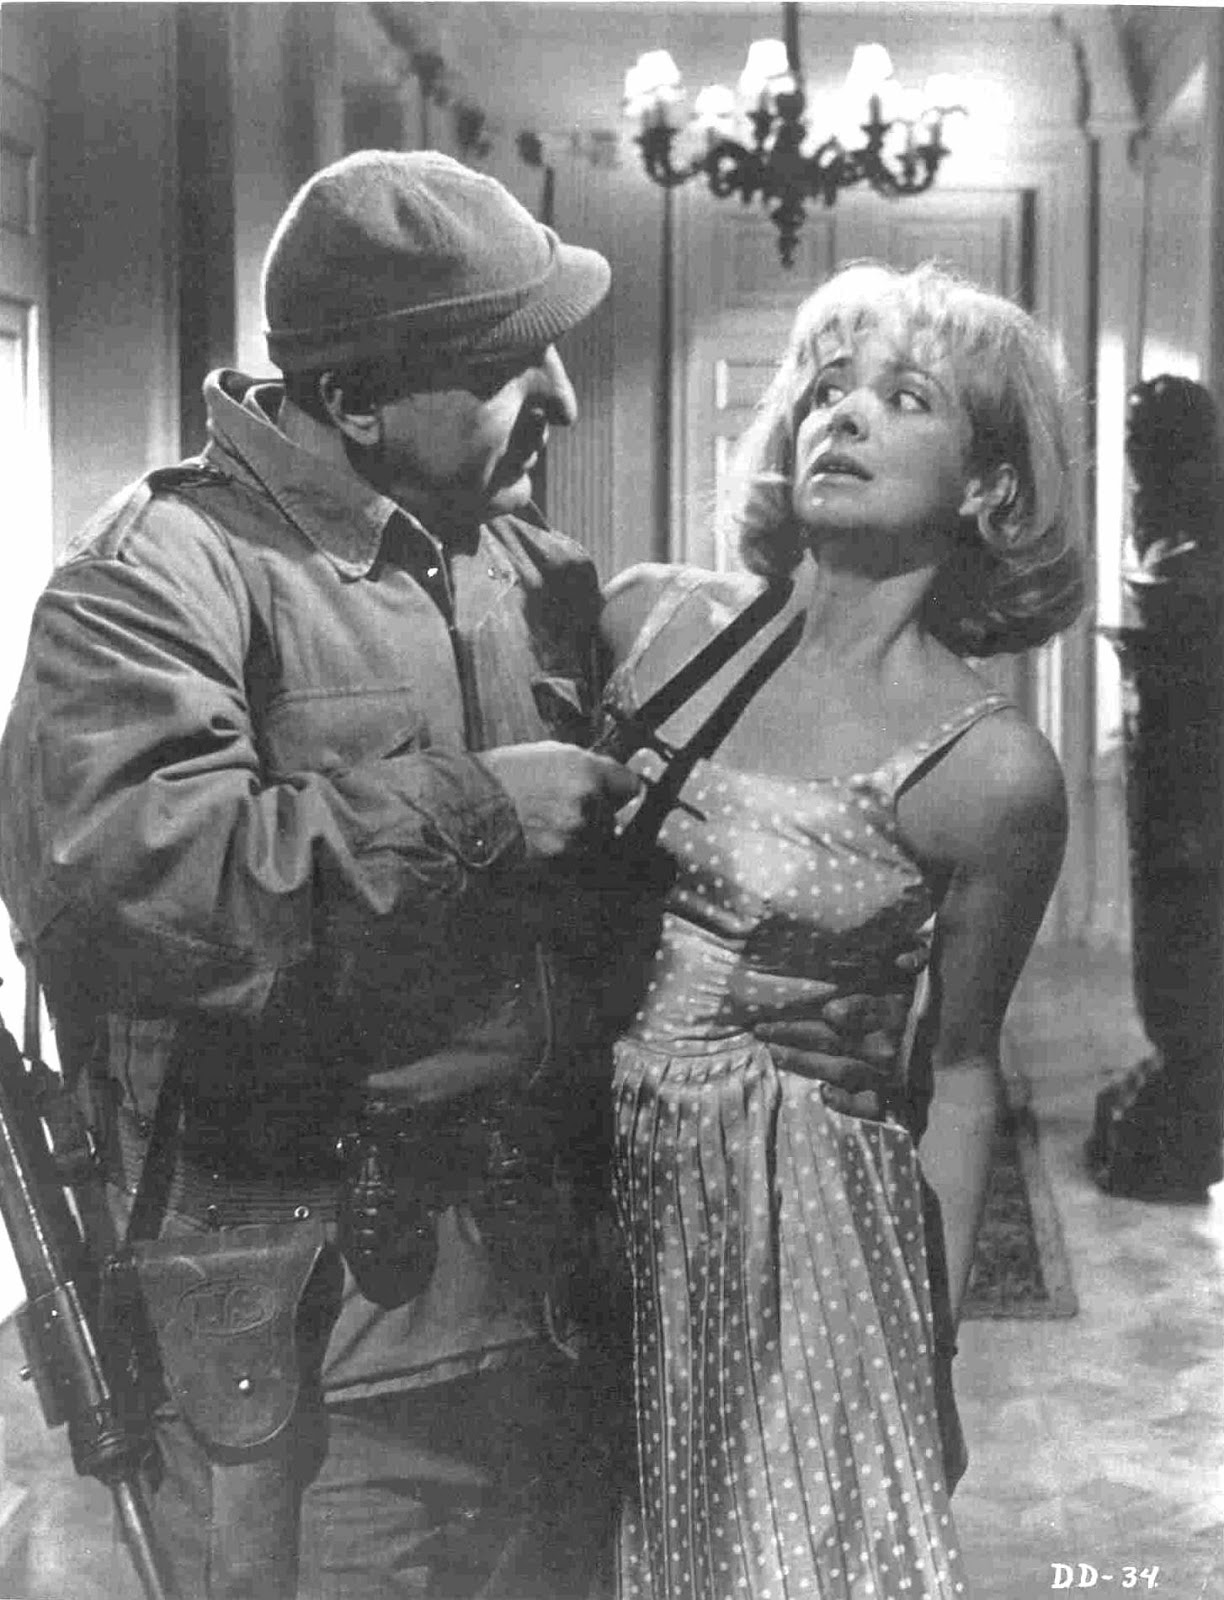 Telly Savalas menacing a German woman in The Dirty Dozen movieloversreviews.blogspot.com